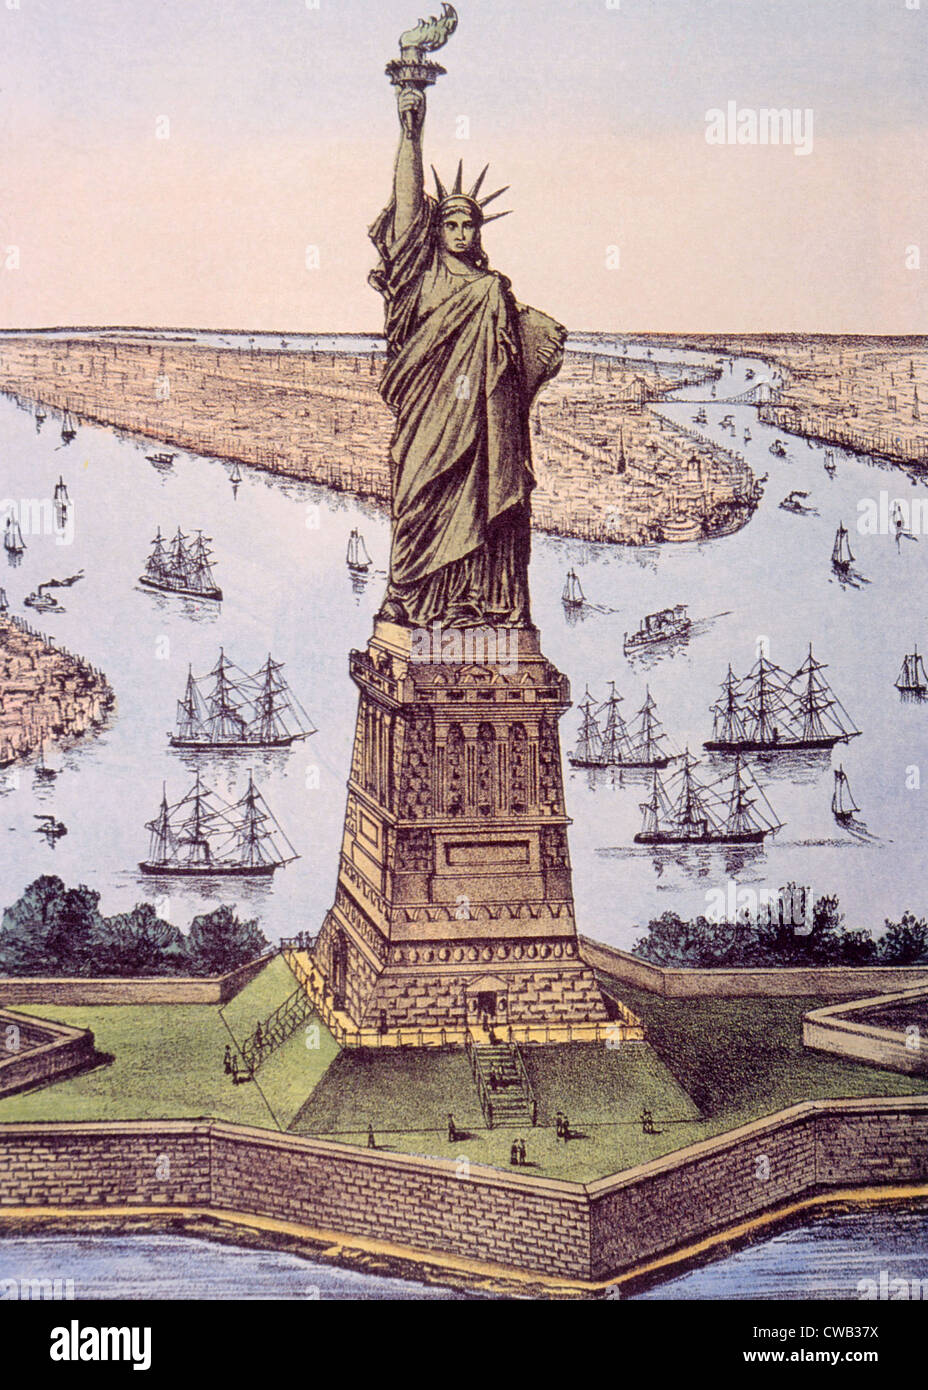 The Statue of Liberty (aka The Great Bertholdi Statue), lithograph by Currier & Ives, 1885 - Stock Image